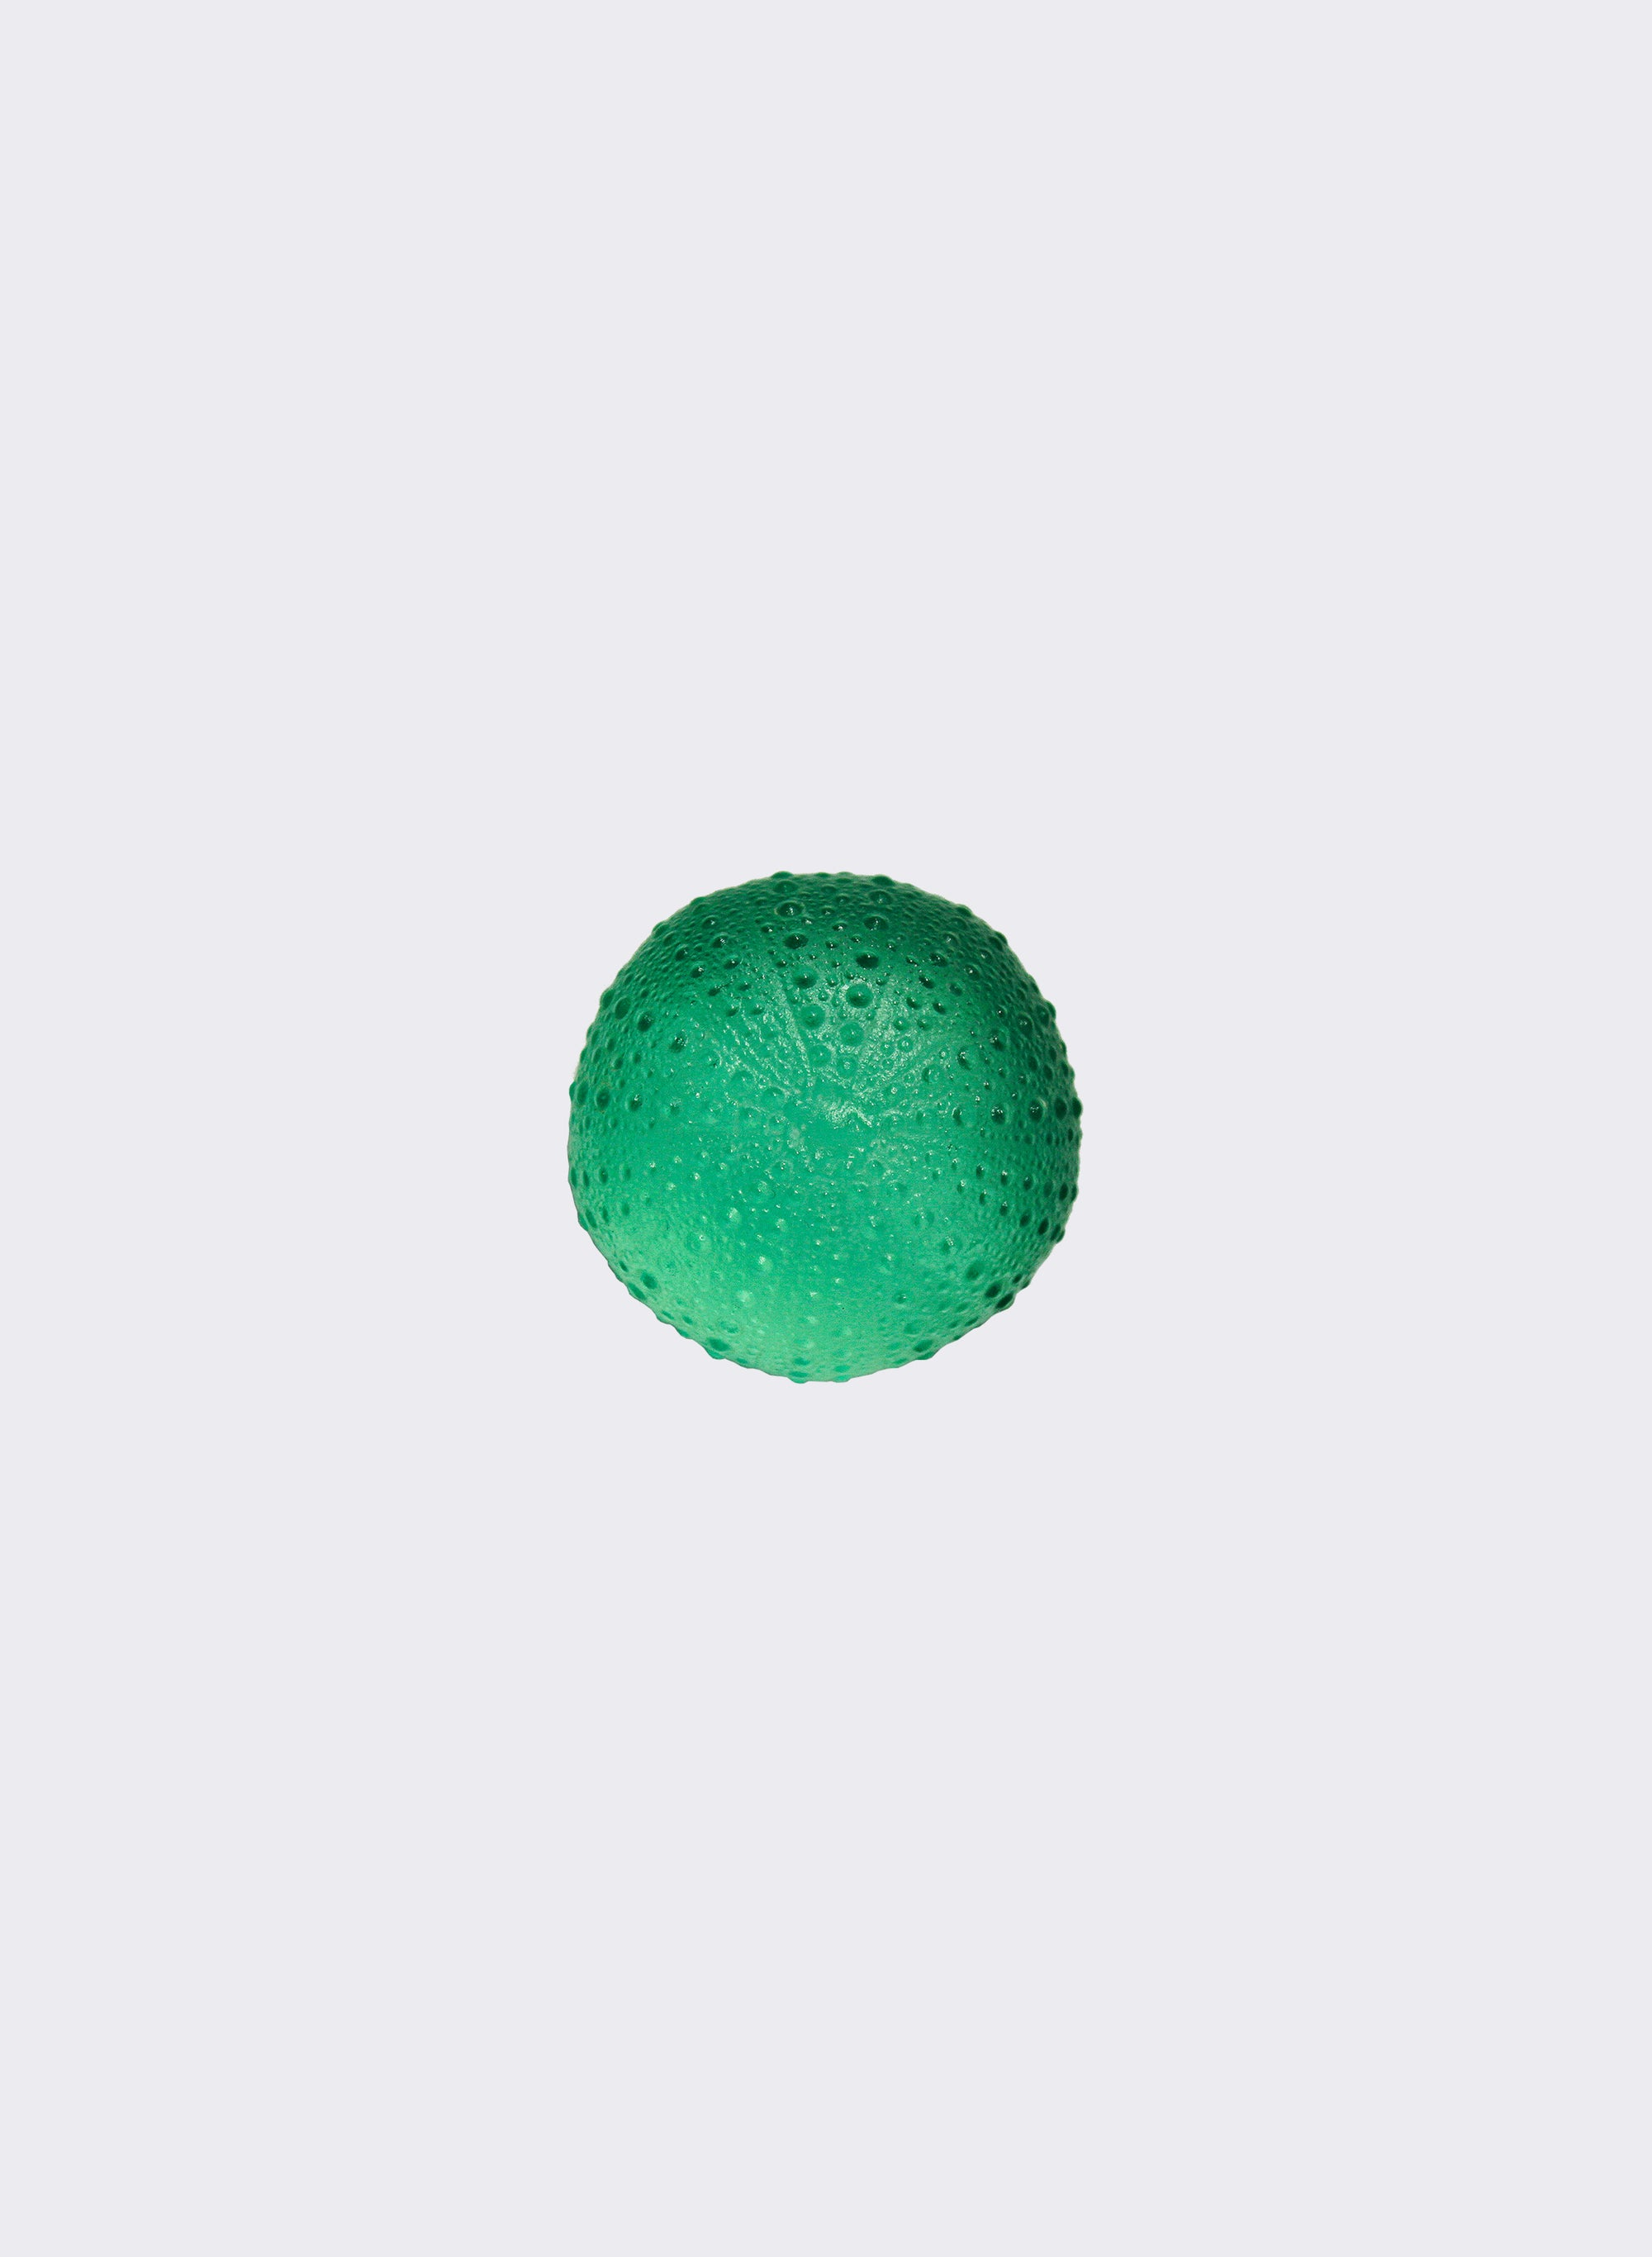 Medium Sea Urchin - Pale Jade